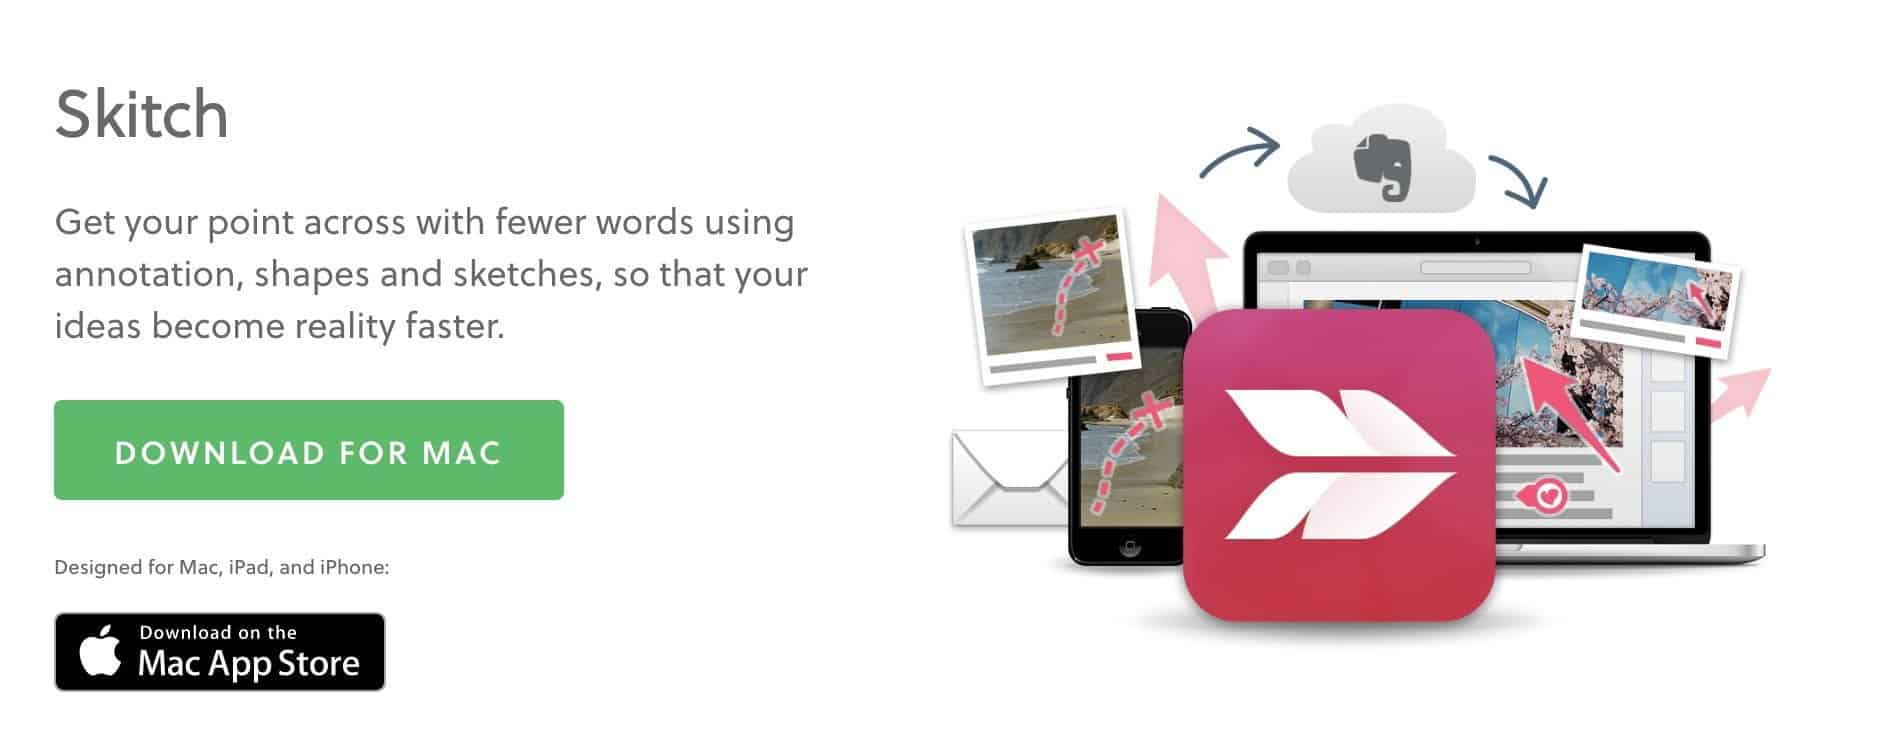 skitch by evernote